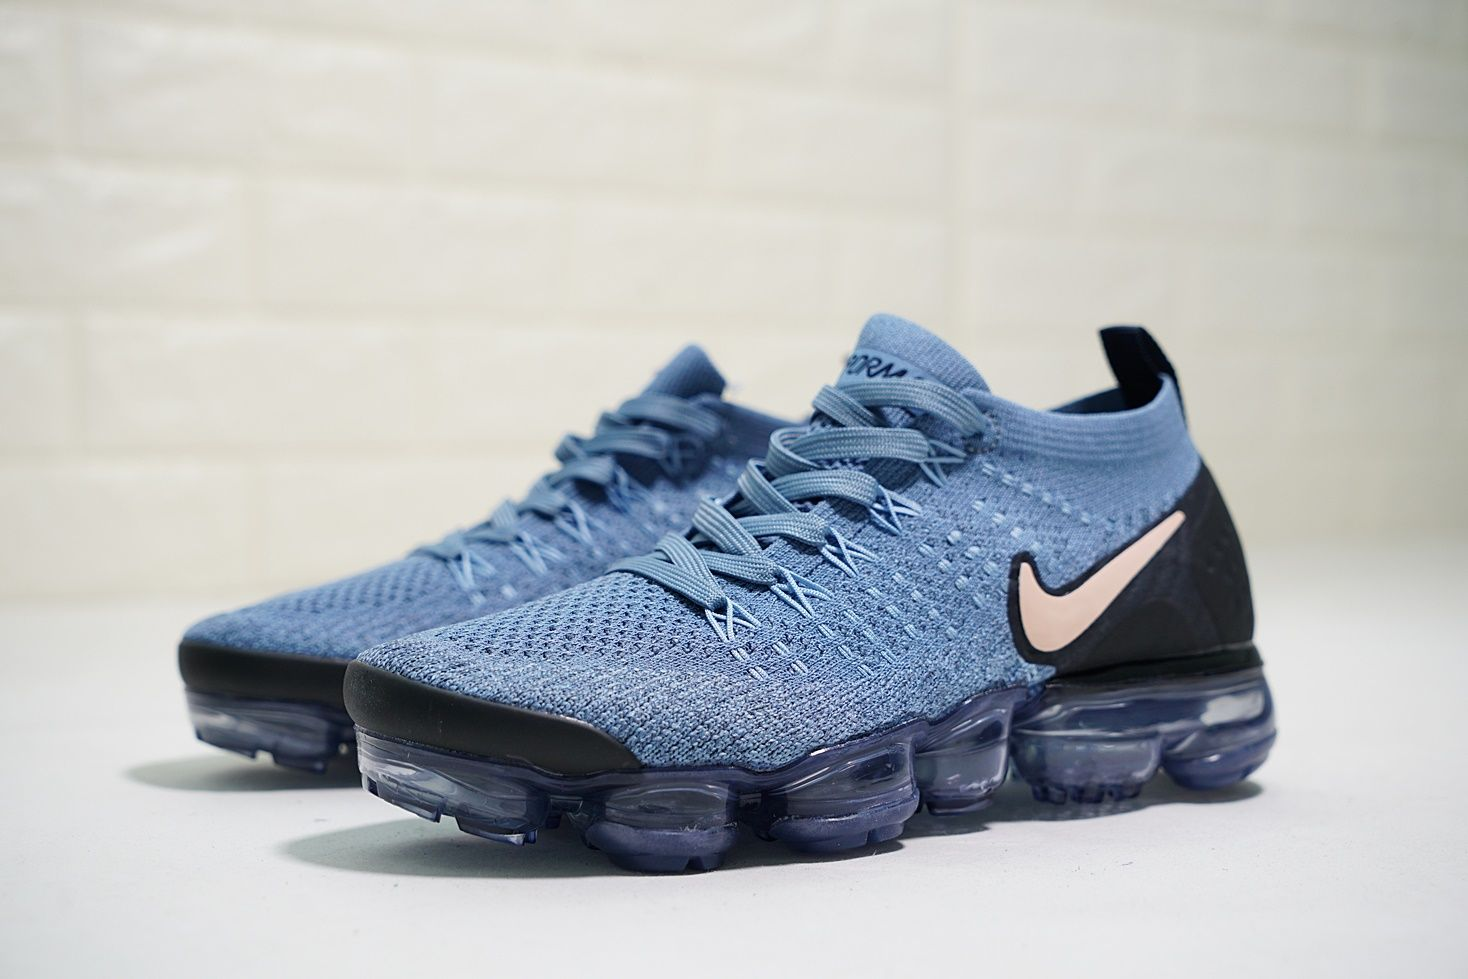 3f5bca88fc2d0 NIKE AIR VAPORMAX FLYKNIT 2 LIGHT BLUE NUDE POWDER 942843 401 ...